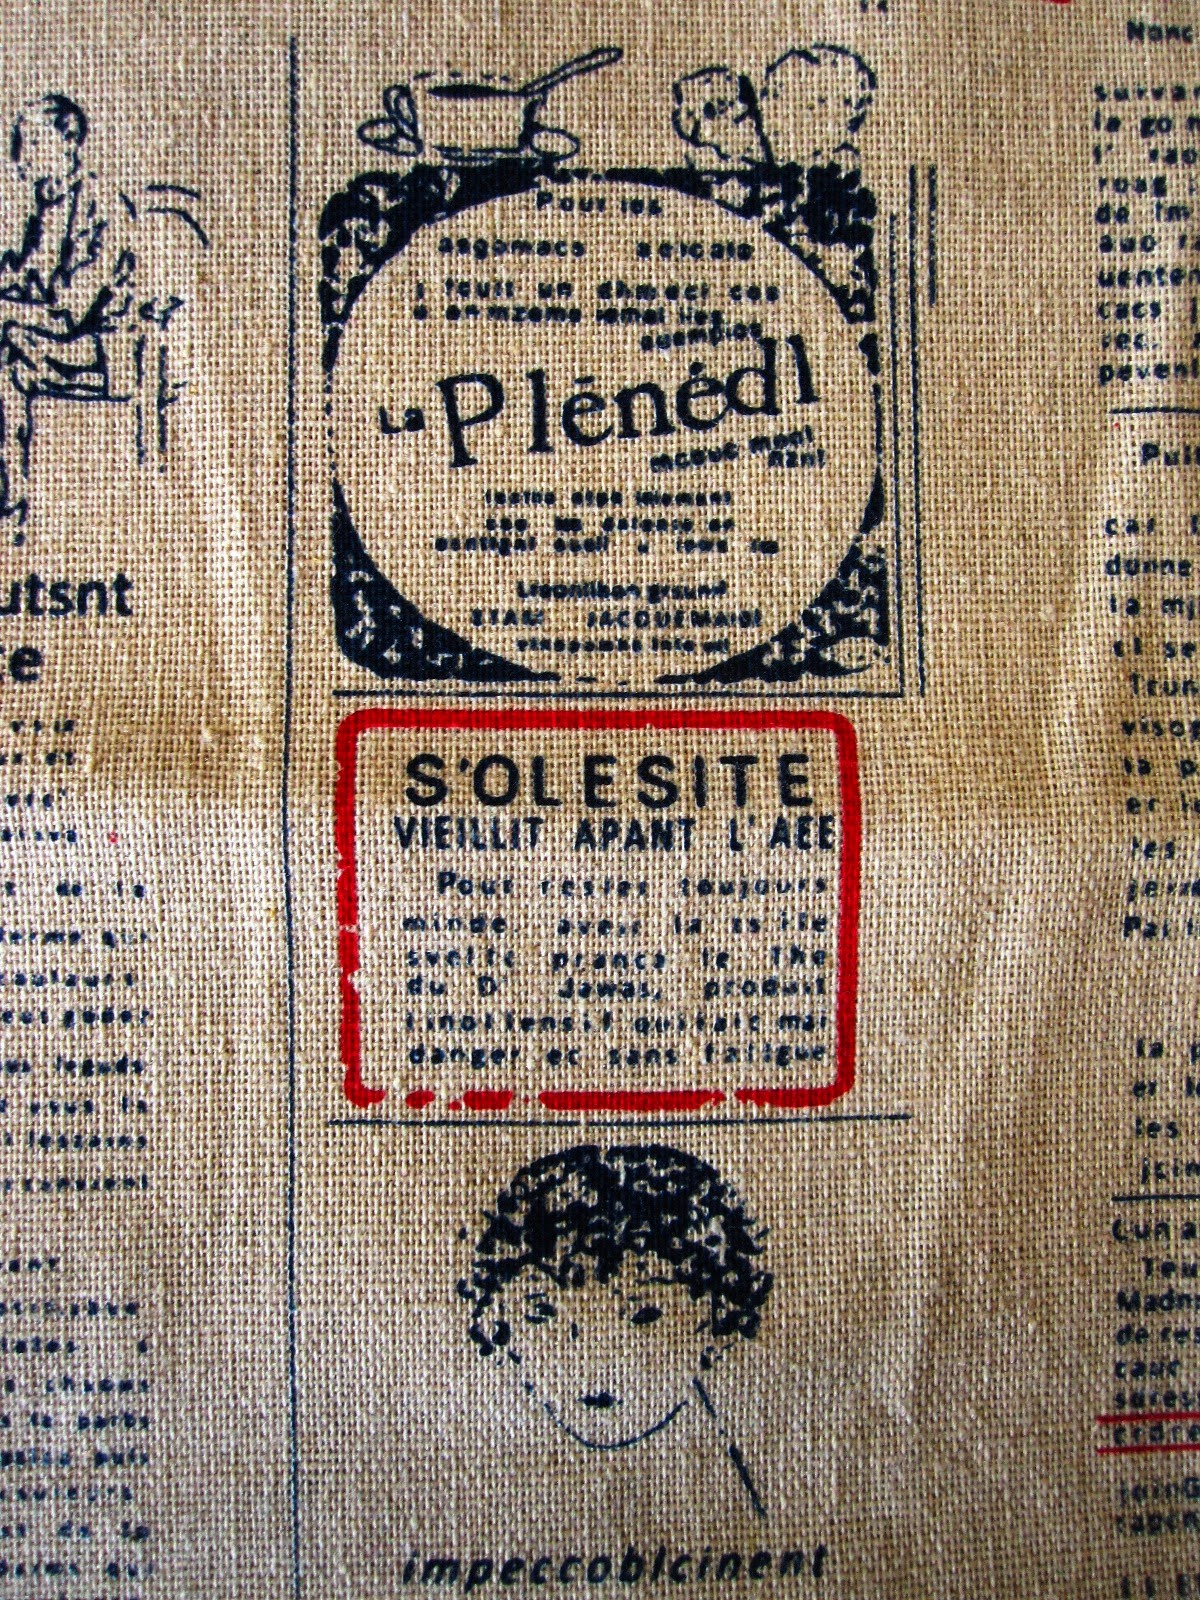 Close up of linen fabric printed with old french advertising in blue and red.